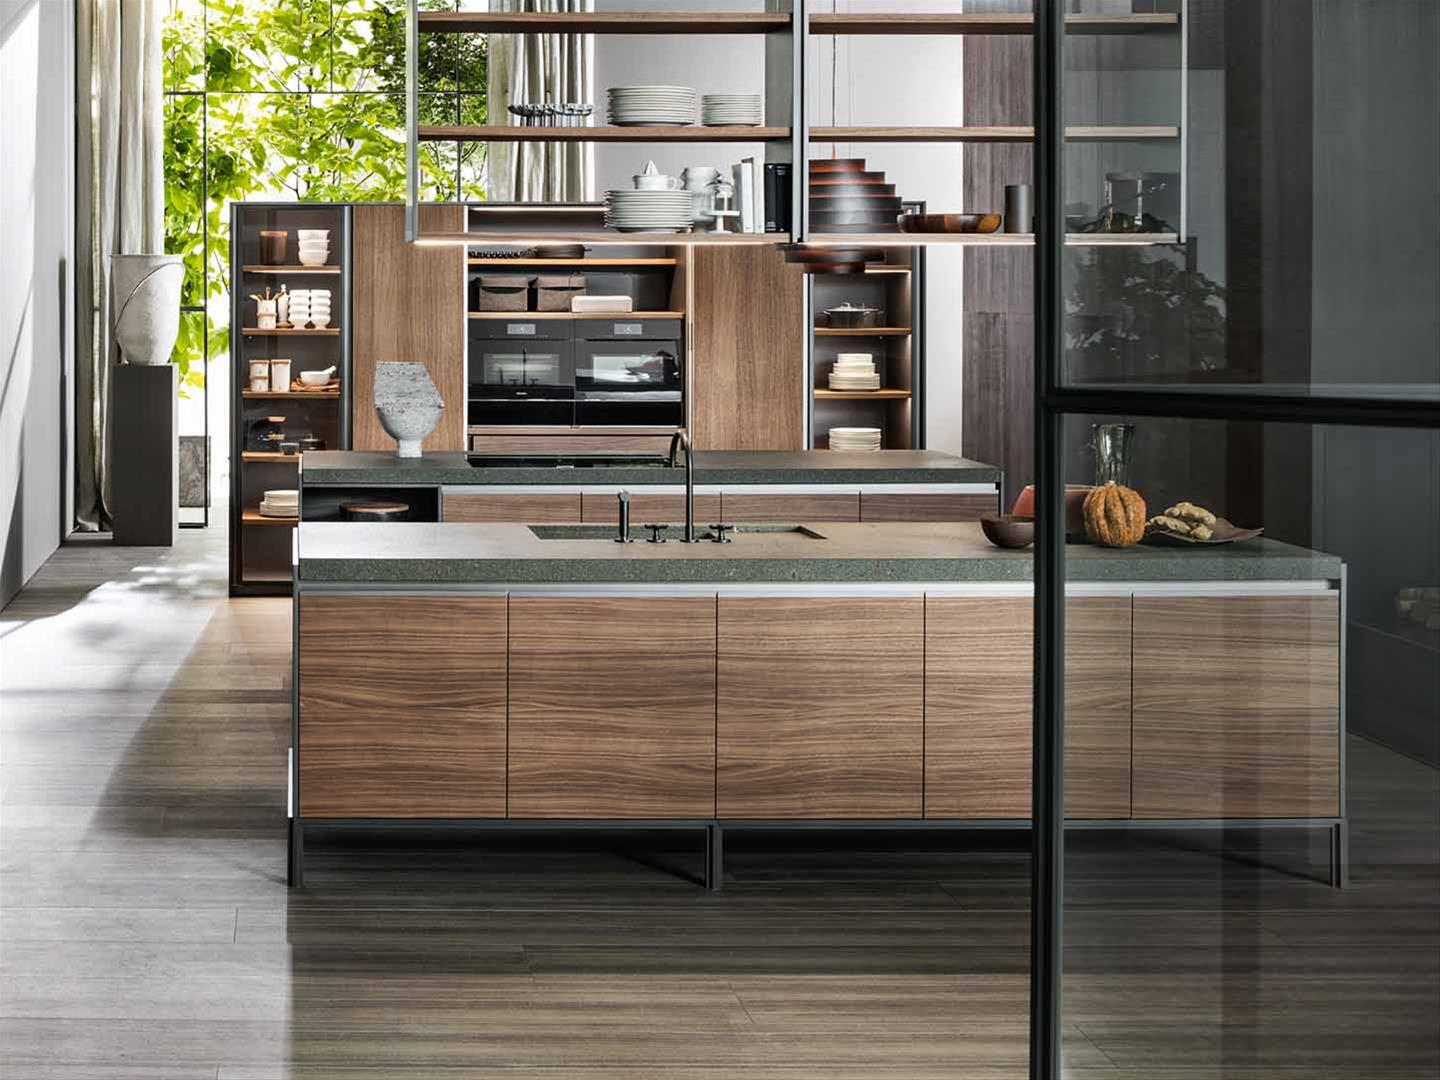 Le essenze per cucine di design in legno dada for Design italiano arredamento